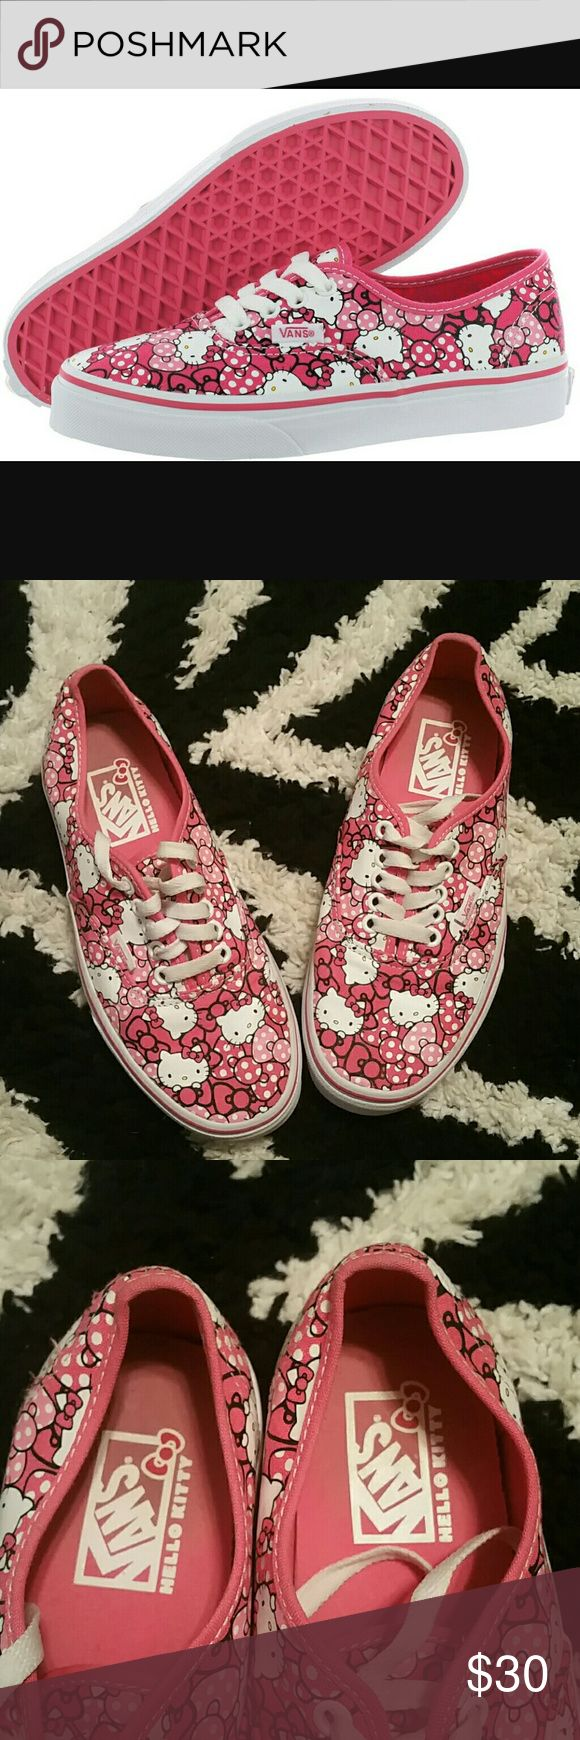 EUC! Vans Hello Kitty Pink/White Sneakers Sz. 8 EUC! Vans Hello Kitty Pink/White Sneakers Sz. 8  HELLO KITTY VANS SNEAKERS  Condition:  Very good pre-owned condition.  Good sole treads; very nice overall shape.  Needs a gentle cleaning.  No torn or repaired parts.  No odors, no holes.    Size:  Women's 8/ Men's 6.5  Color:  Pink & White Vans Shoes Athletic Shoes